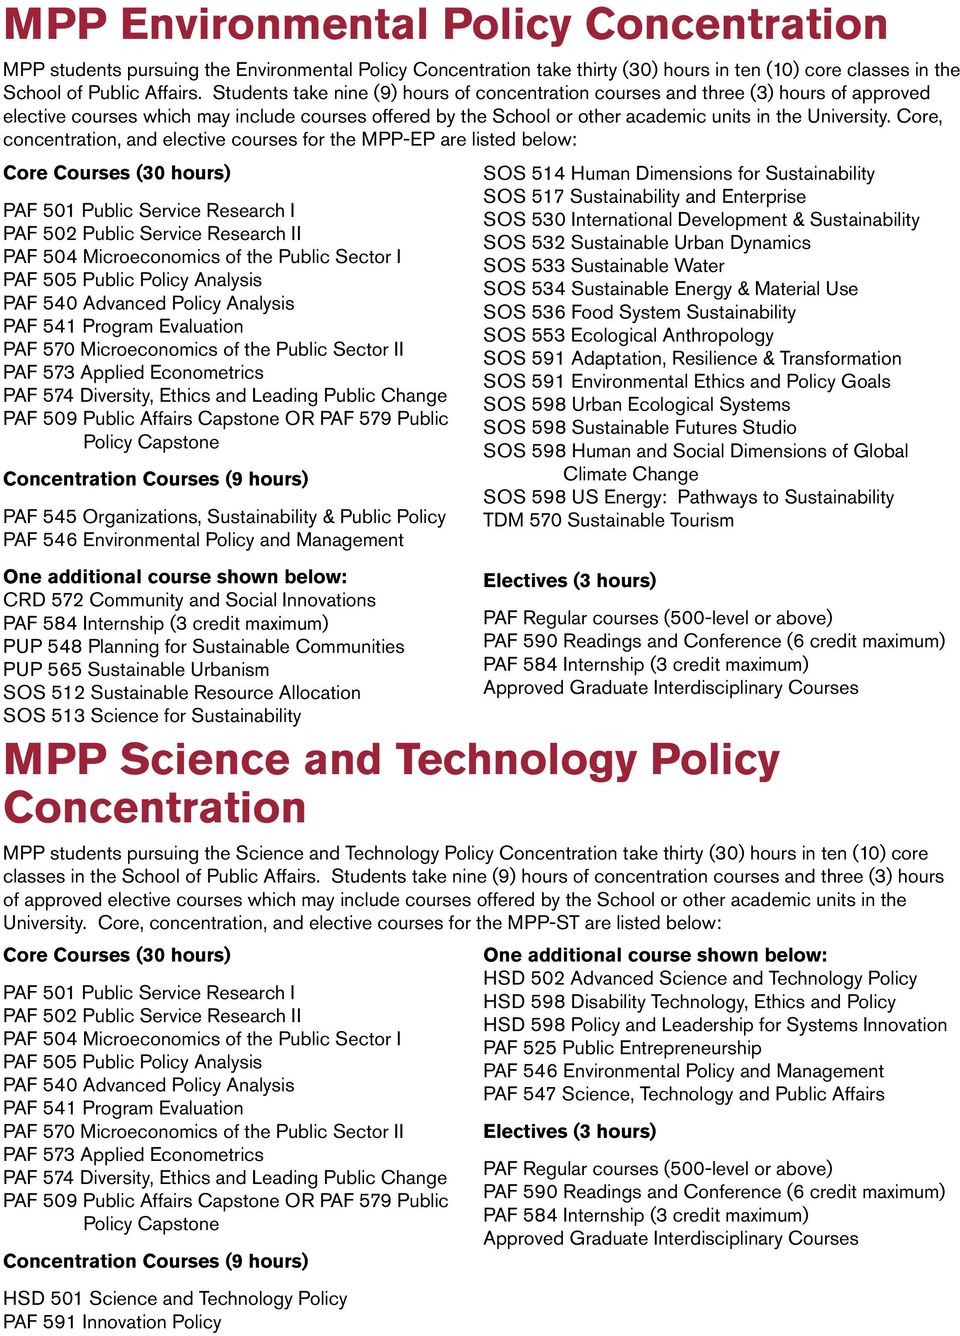 Core, concentration, and elective courses for the MPP-EP are listed below: Core Courses (30 hours) PAF 504 Microeconomics of the Public Sector I PAF 540 Advanced Policy Analysis PAF 570